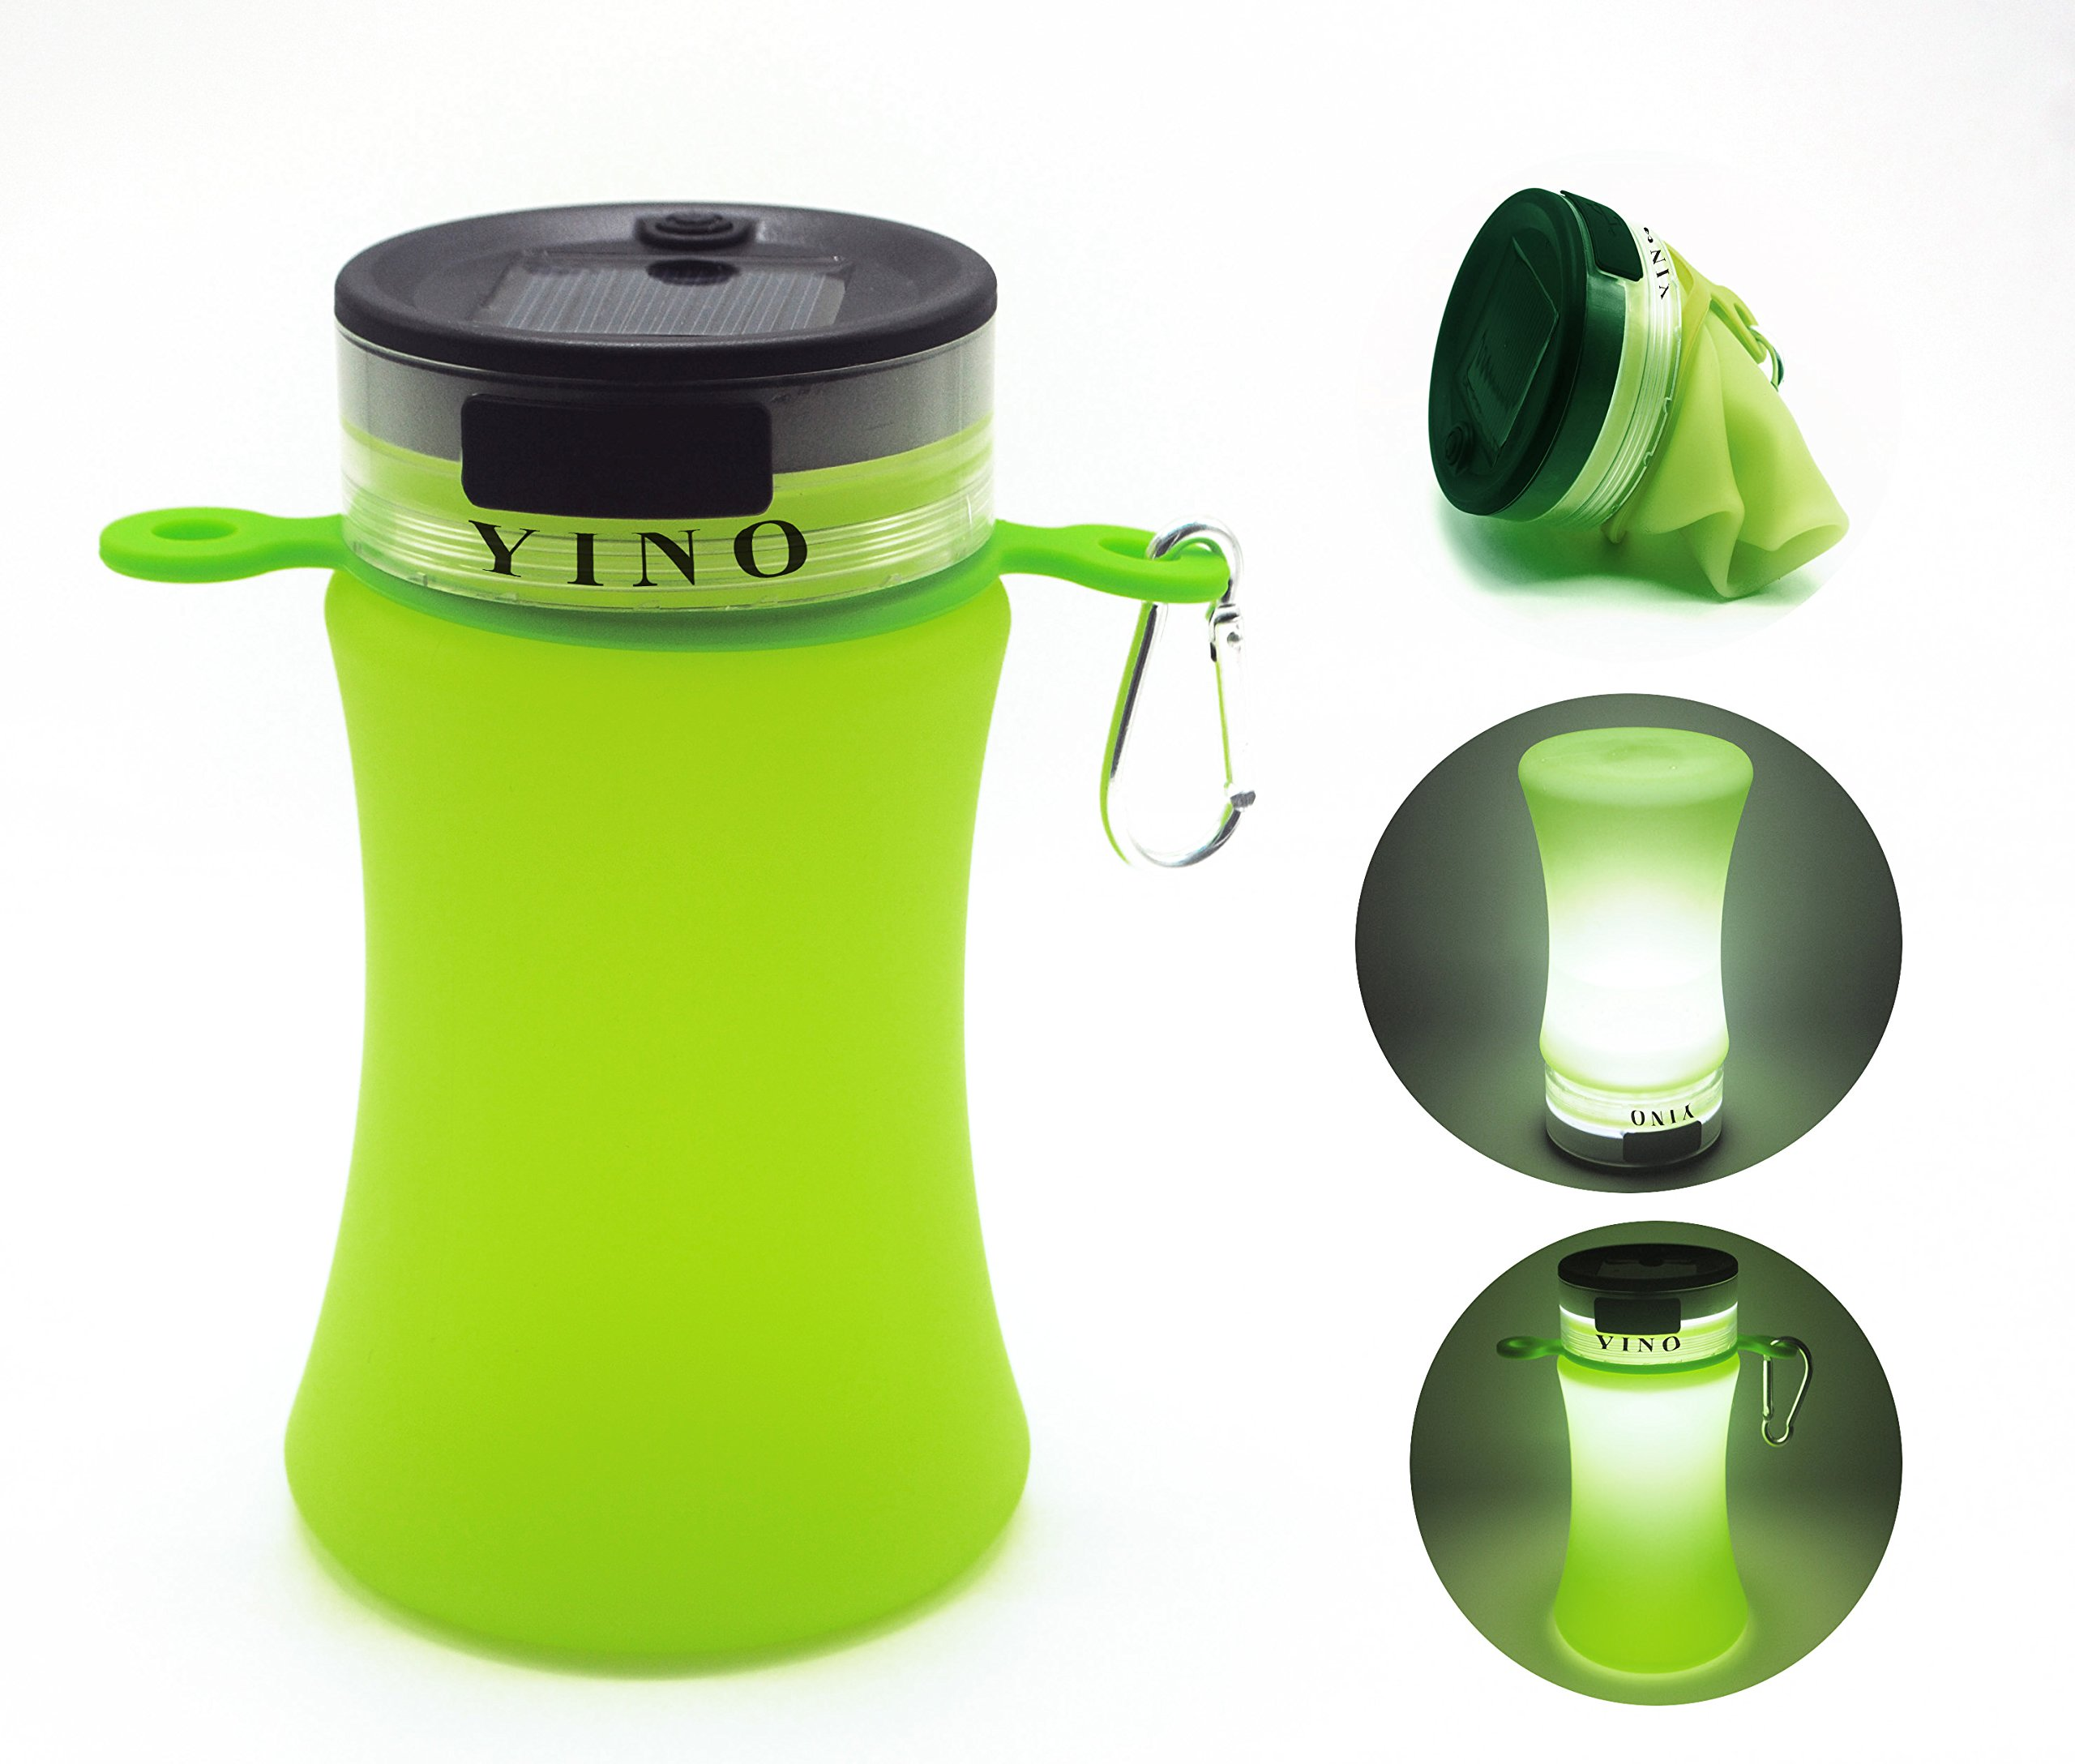 YINO Collapsible Silicon Water Bottle,550ml Water Cup with 3 Modes Battery Emergency Light,Solar Charge Waterproof LED Lantern for Home Lamp,Power Outage,Camping,Hiking,Outdoor Emergency (Green)